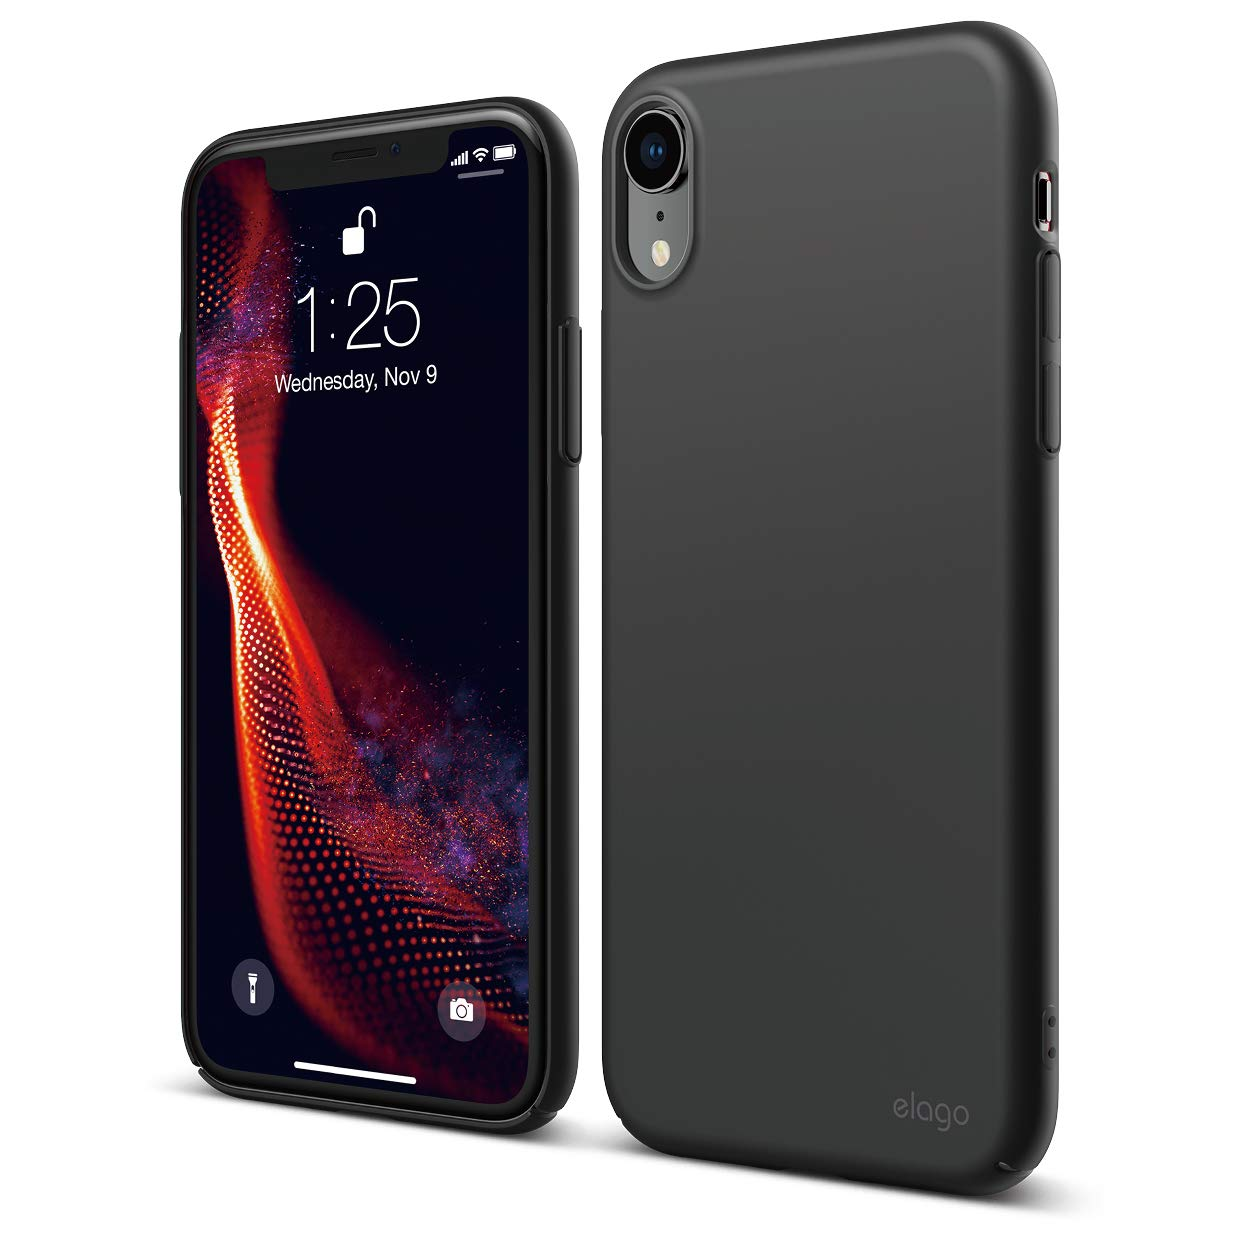 elago Slim Fit Series iPhone XR case [Black] - [Matte Finish][Support Wireless Charging][Full Covered][Scratch & Minor Drop Protection][Everyday Case] Compatible with iPhone XR (2018)